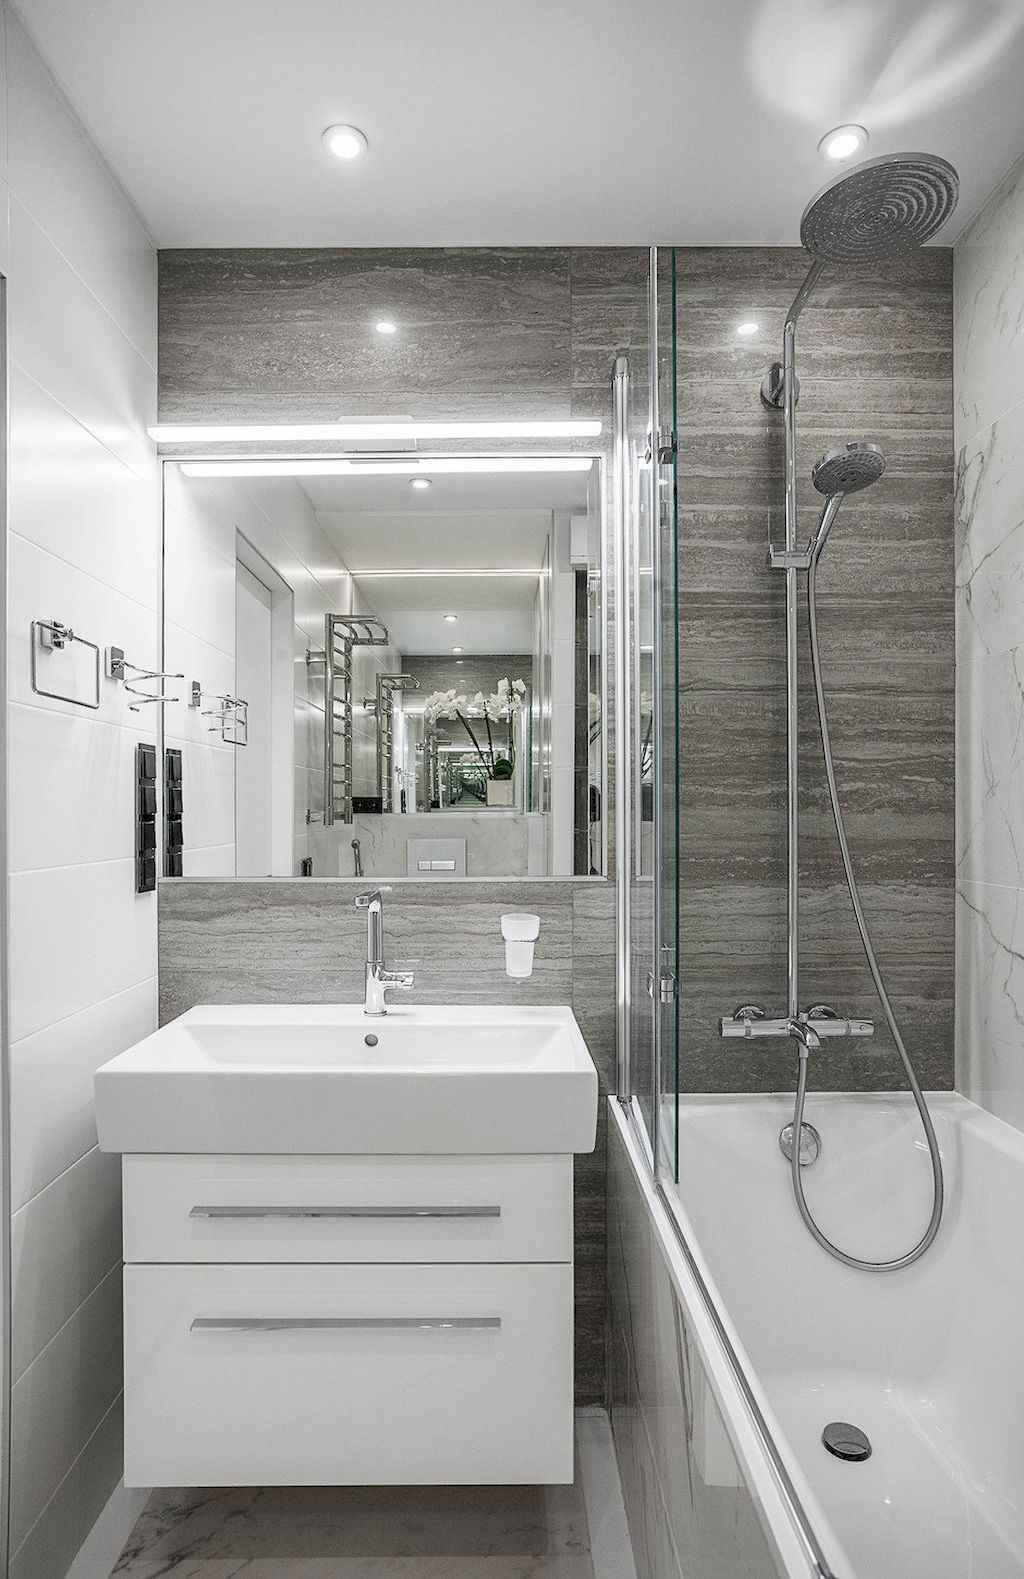 111 awesome small bathroom remodel ideas on a budget (86)